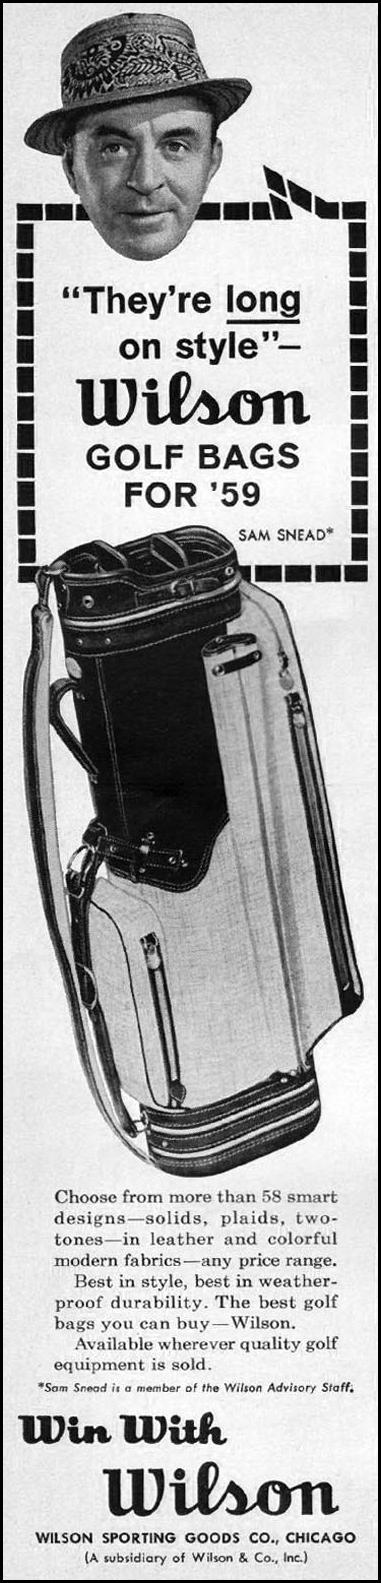 WILSON GOLF BAGS SPORTS ILLUSTRATED 05/11/1959 p. 72